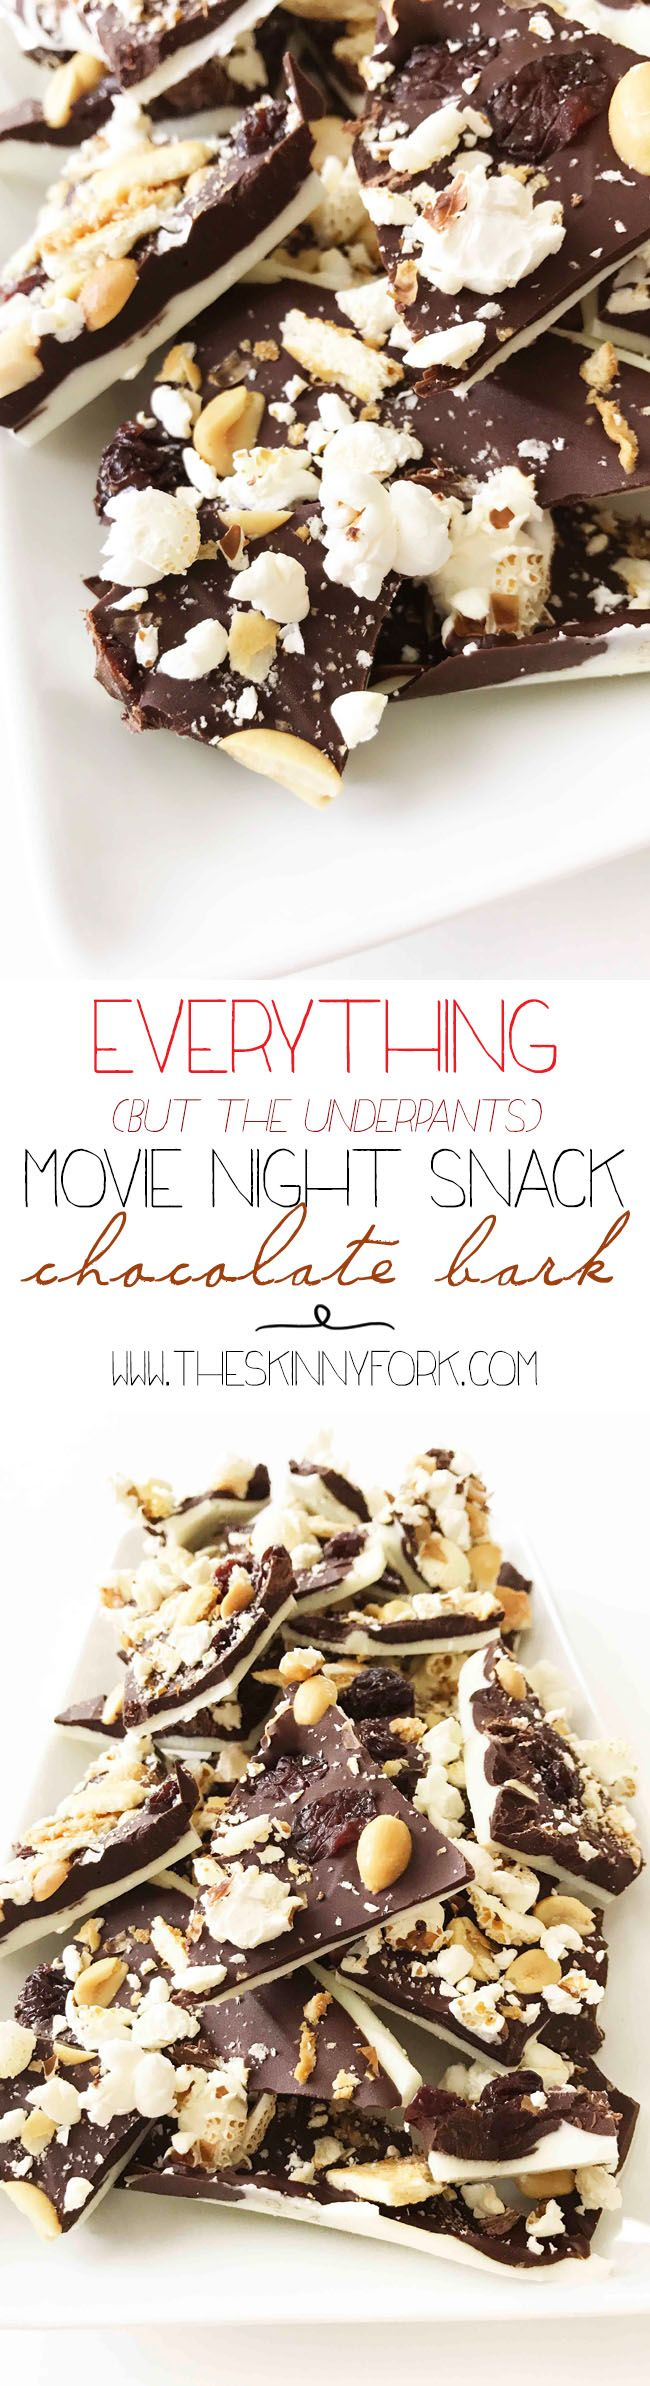 Are you ready to #Pop4Captain? Check out this 'Everything (But the Underpants) Movie Night Snack Chocolate Bark'! Made with Pop Secret, Lance Snacks, and Walmart!  #Pmedia #Ad TheSkinnyFork.com | Skinny & Healthy Recipes